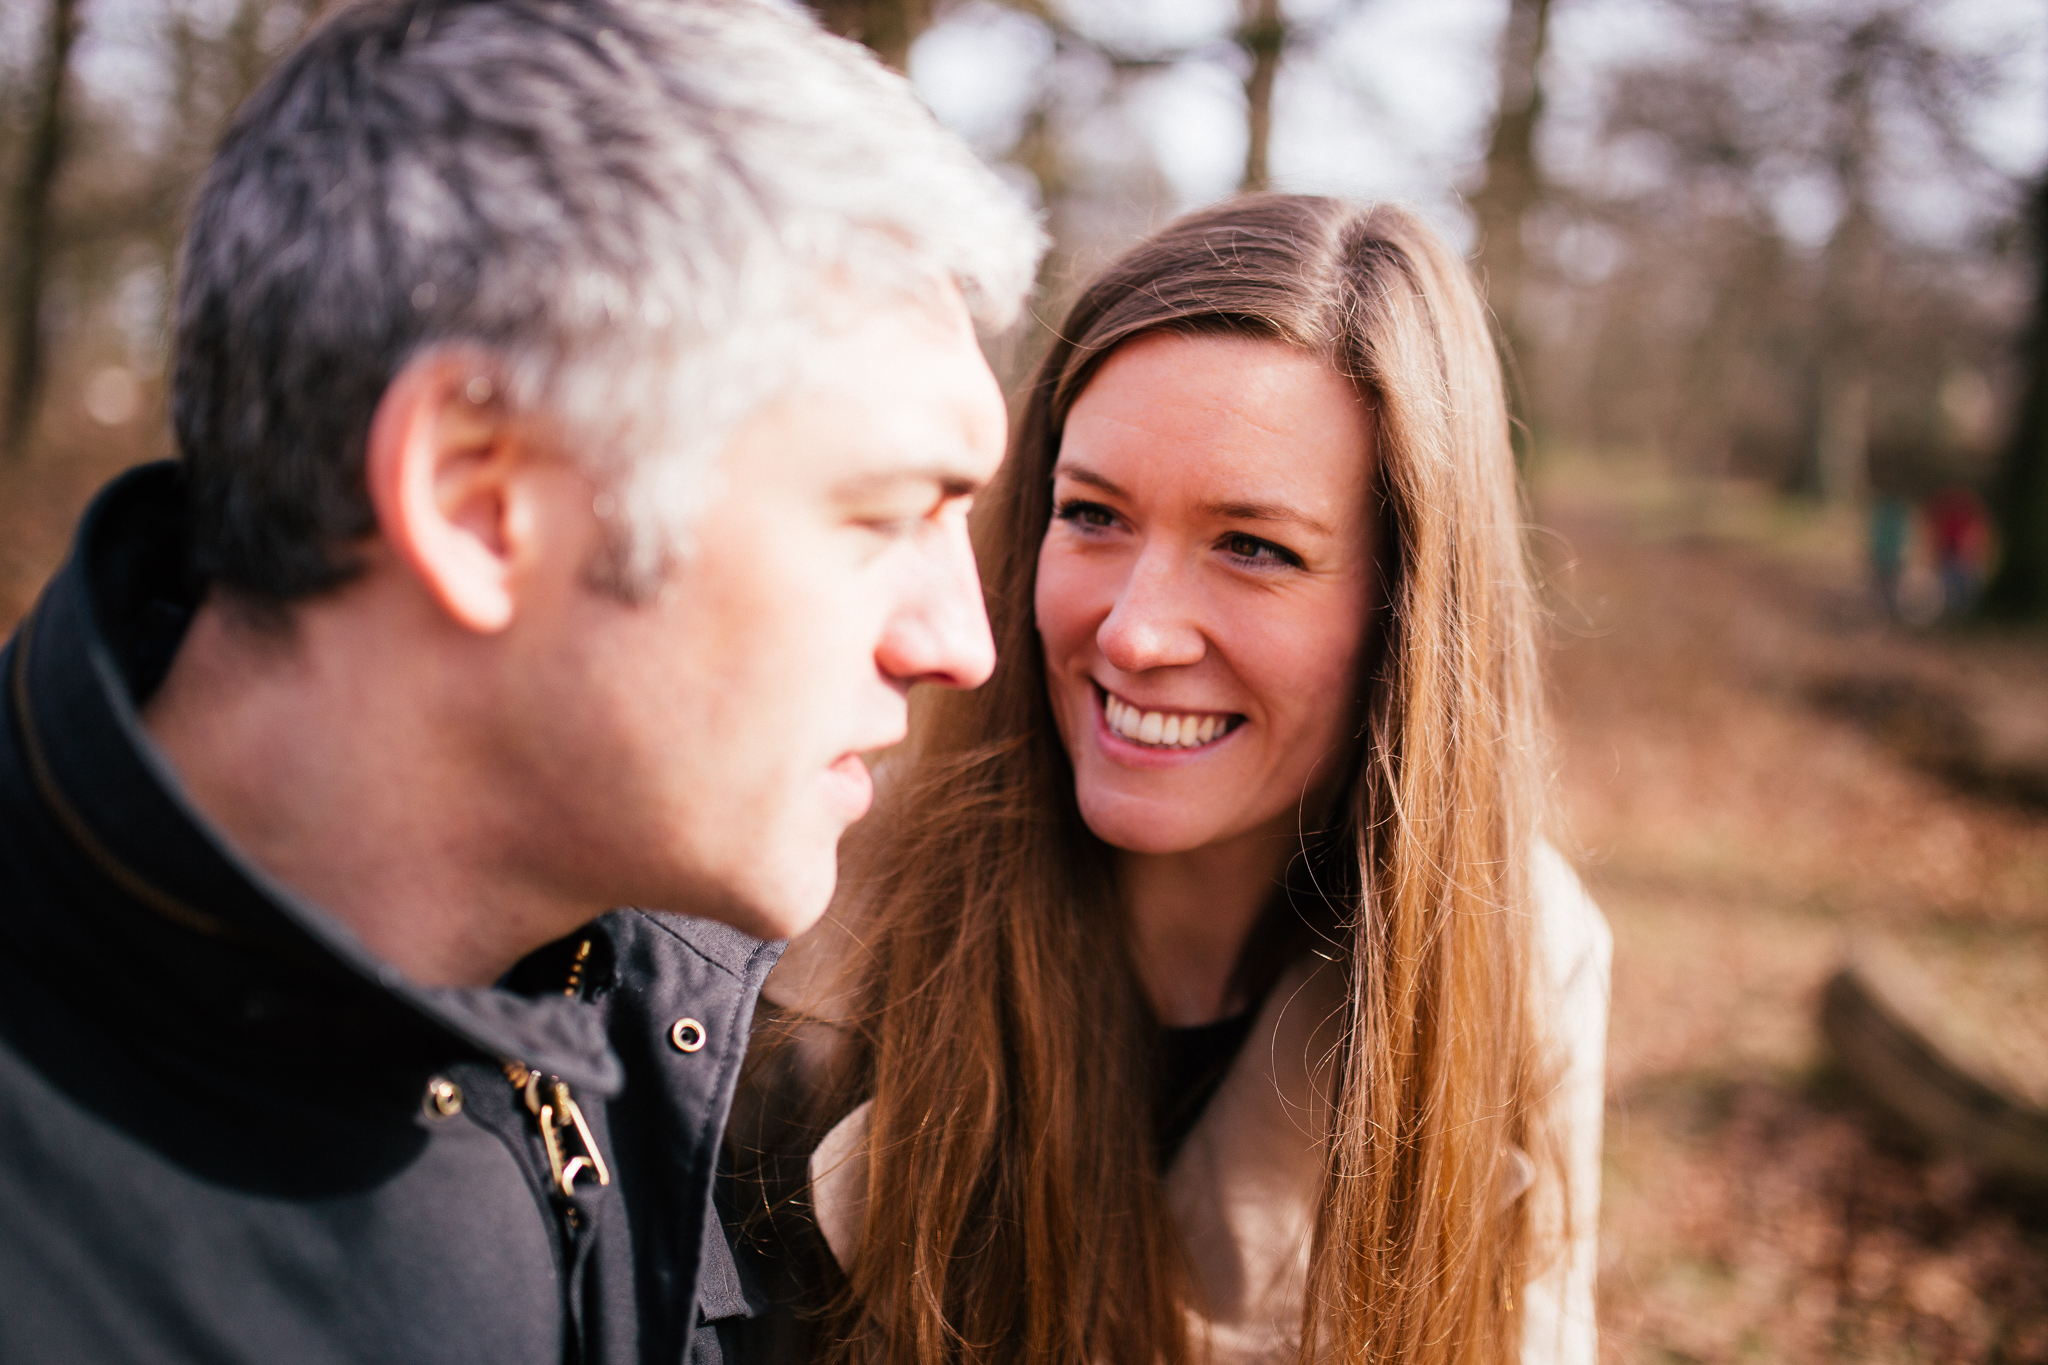 Richmond Park Engagement Photography Wedding Photographer Surrey (8 of 54).jpg